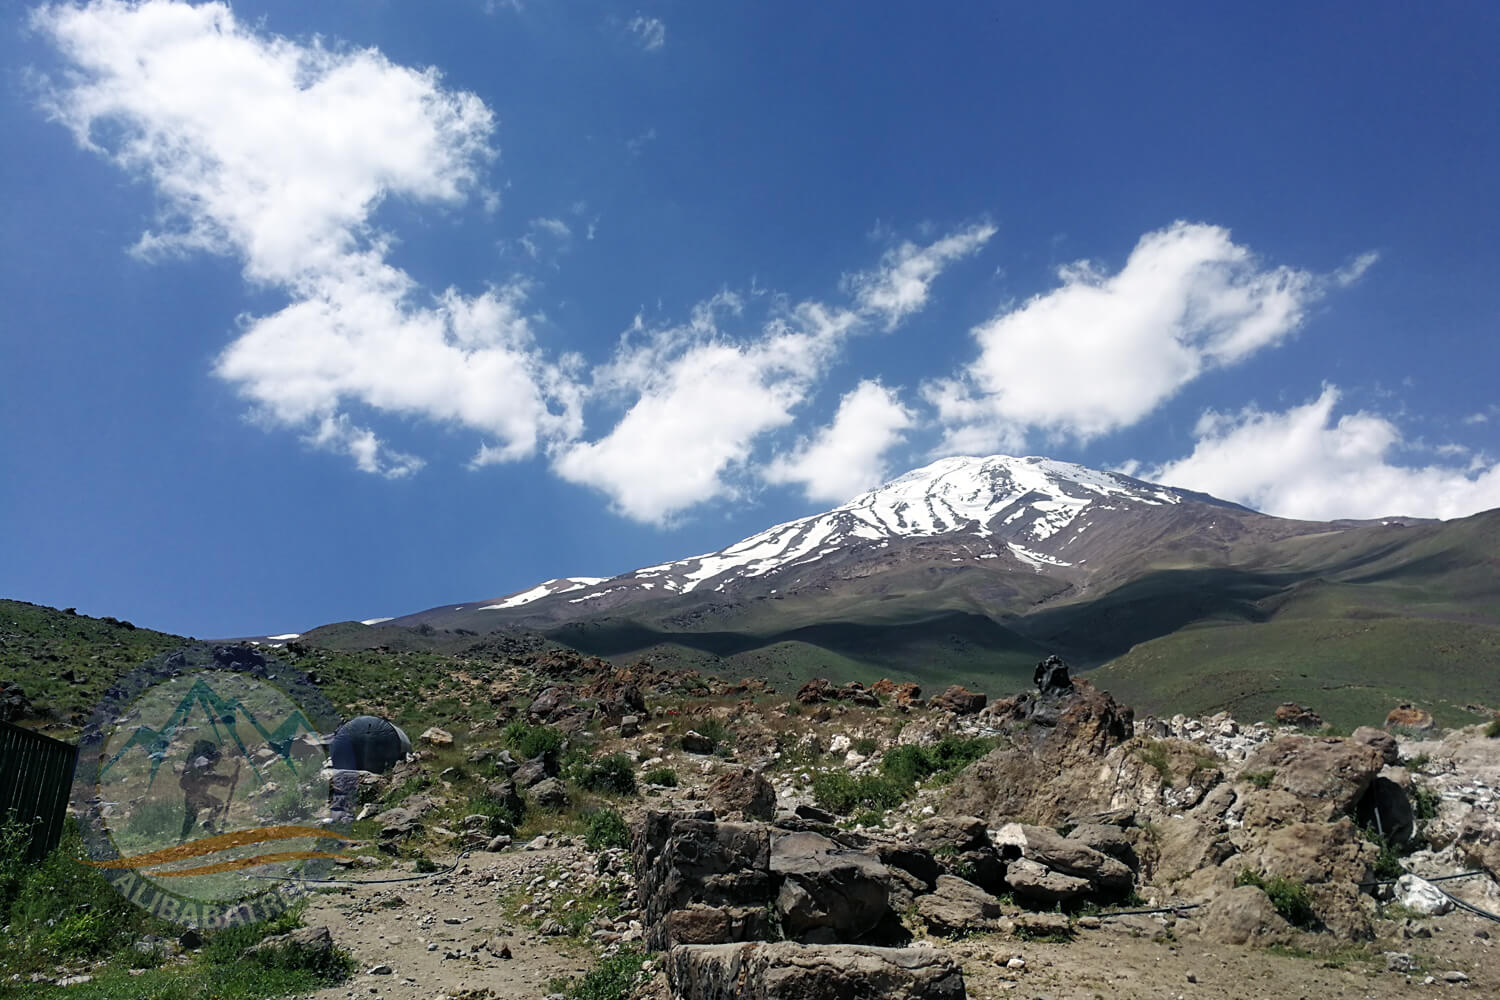 Alibabatrek top 3 summit of iran trekking tour mount damavand 4